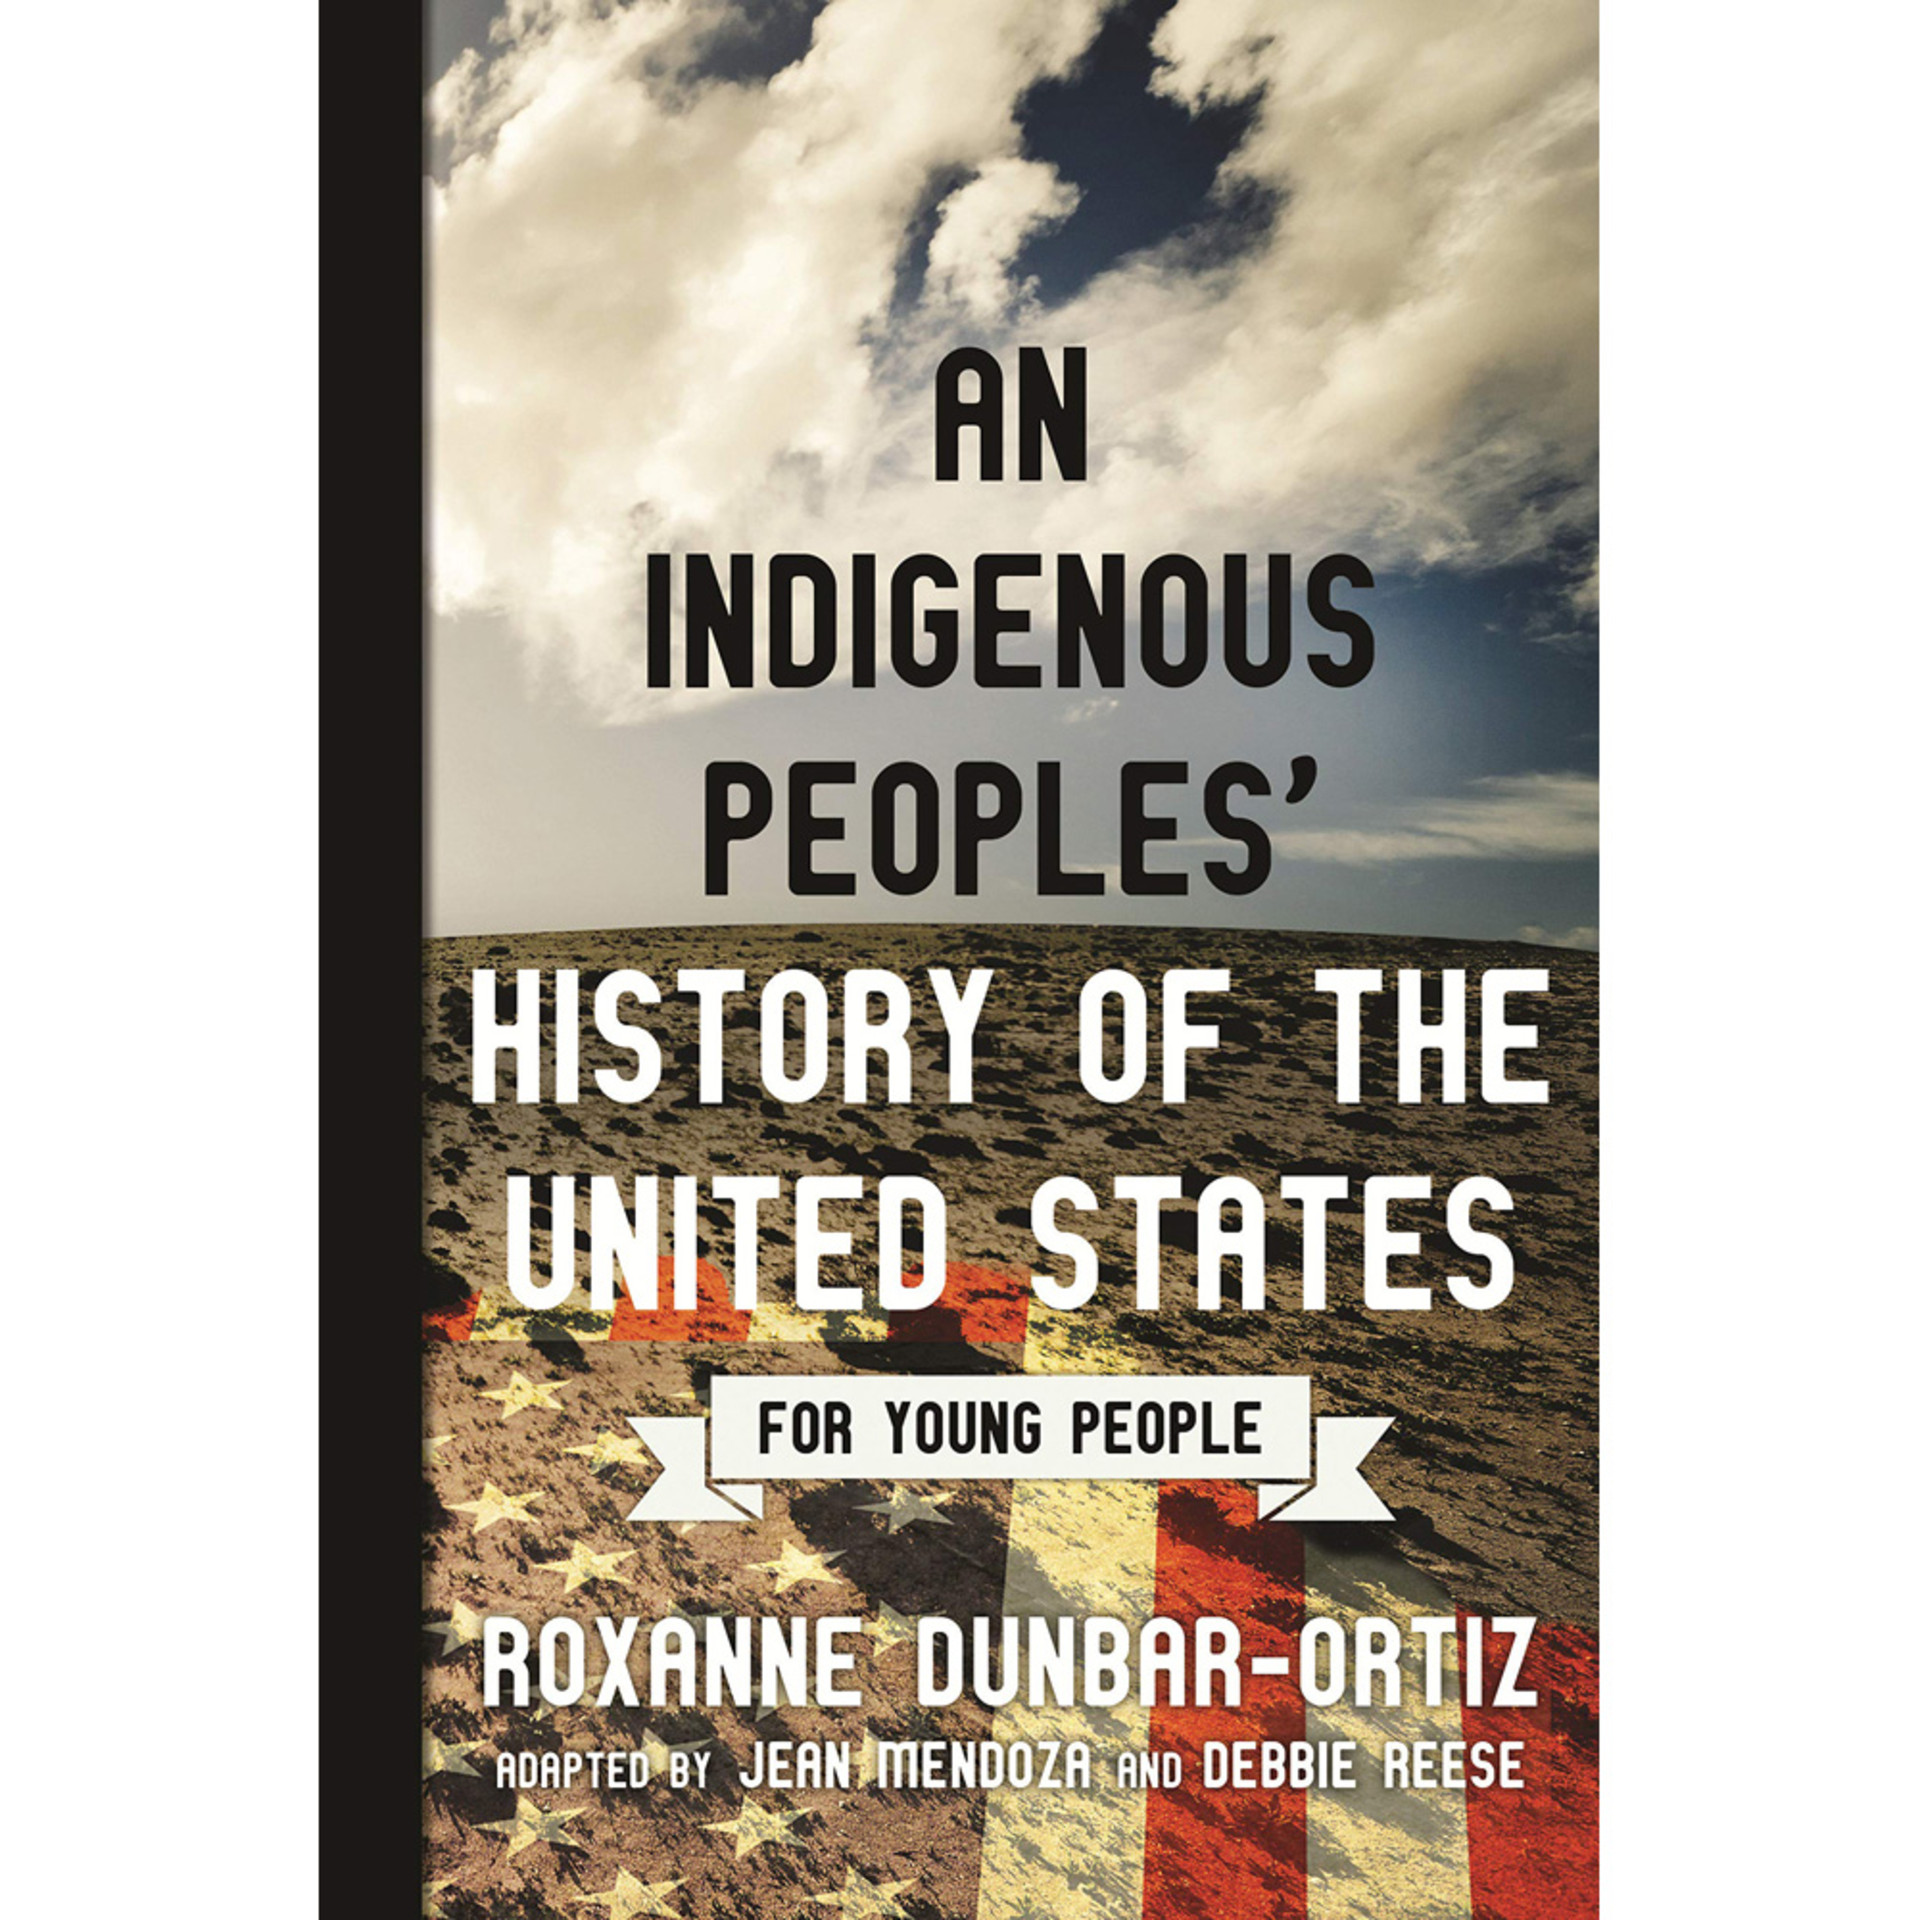 An Indigenous Peoples' History of the United States for Young People by Roxanne Dunbar-Ortiz, adapted by Jean Mendoza and Debbie Reese